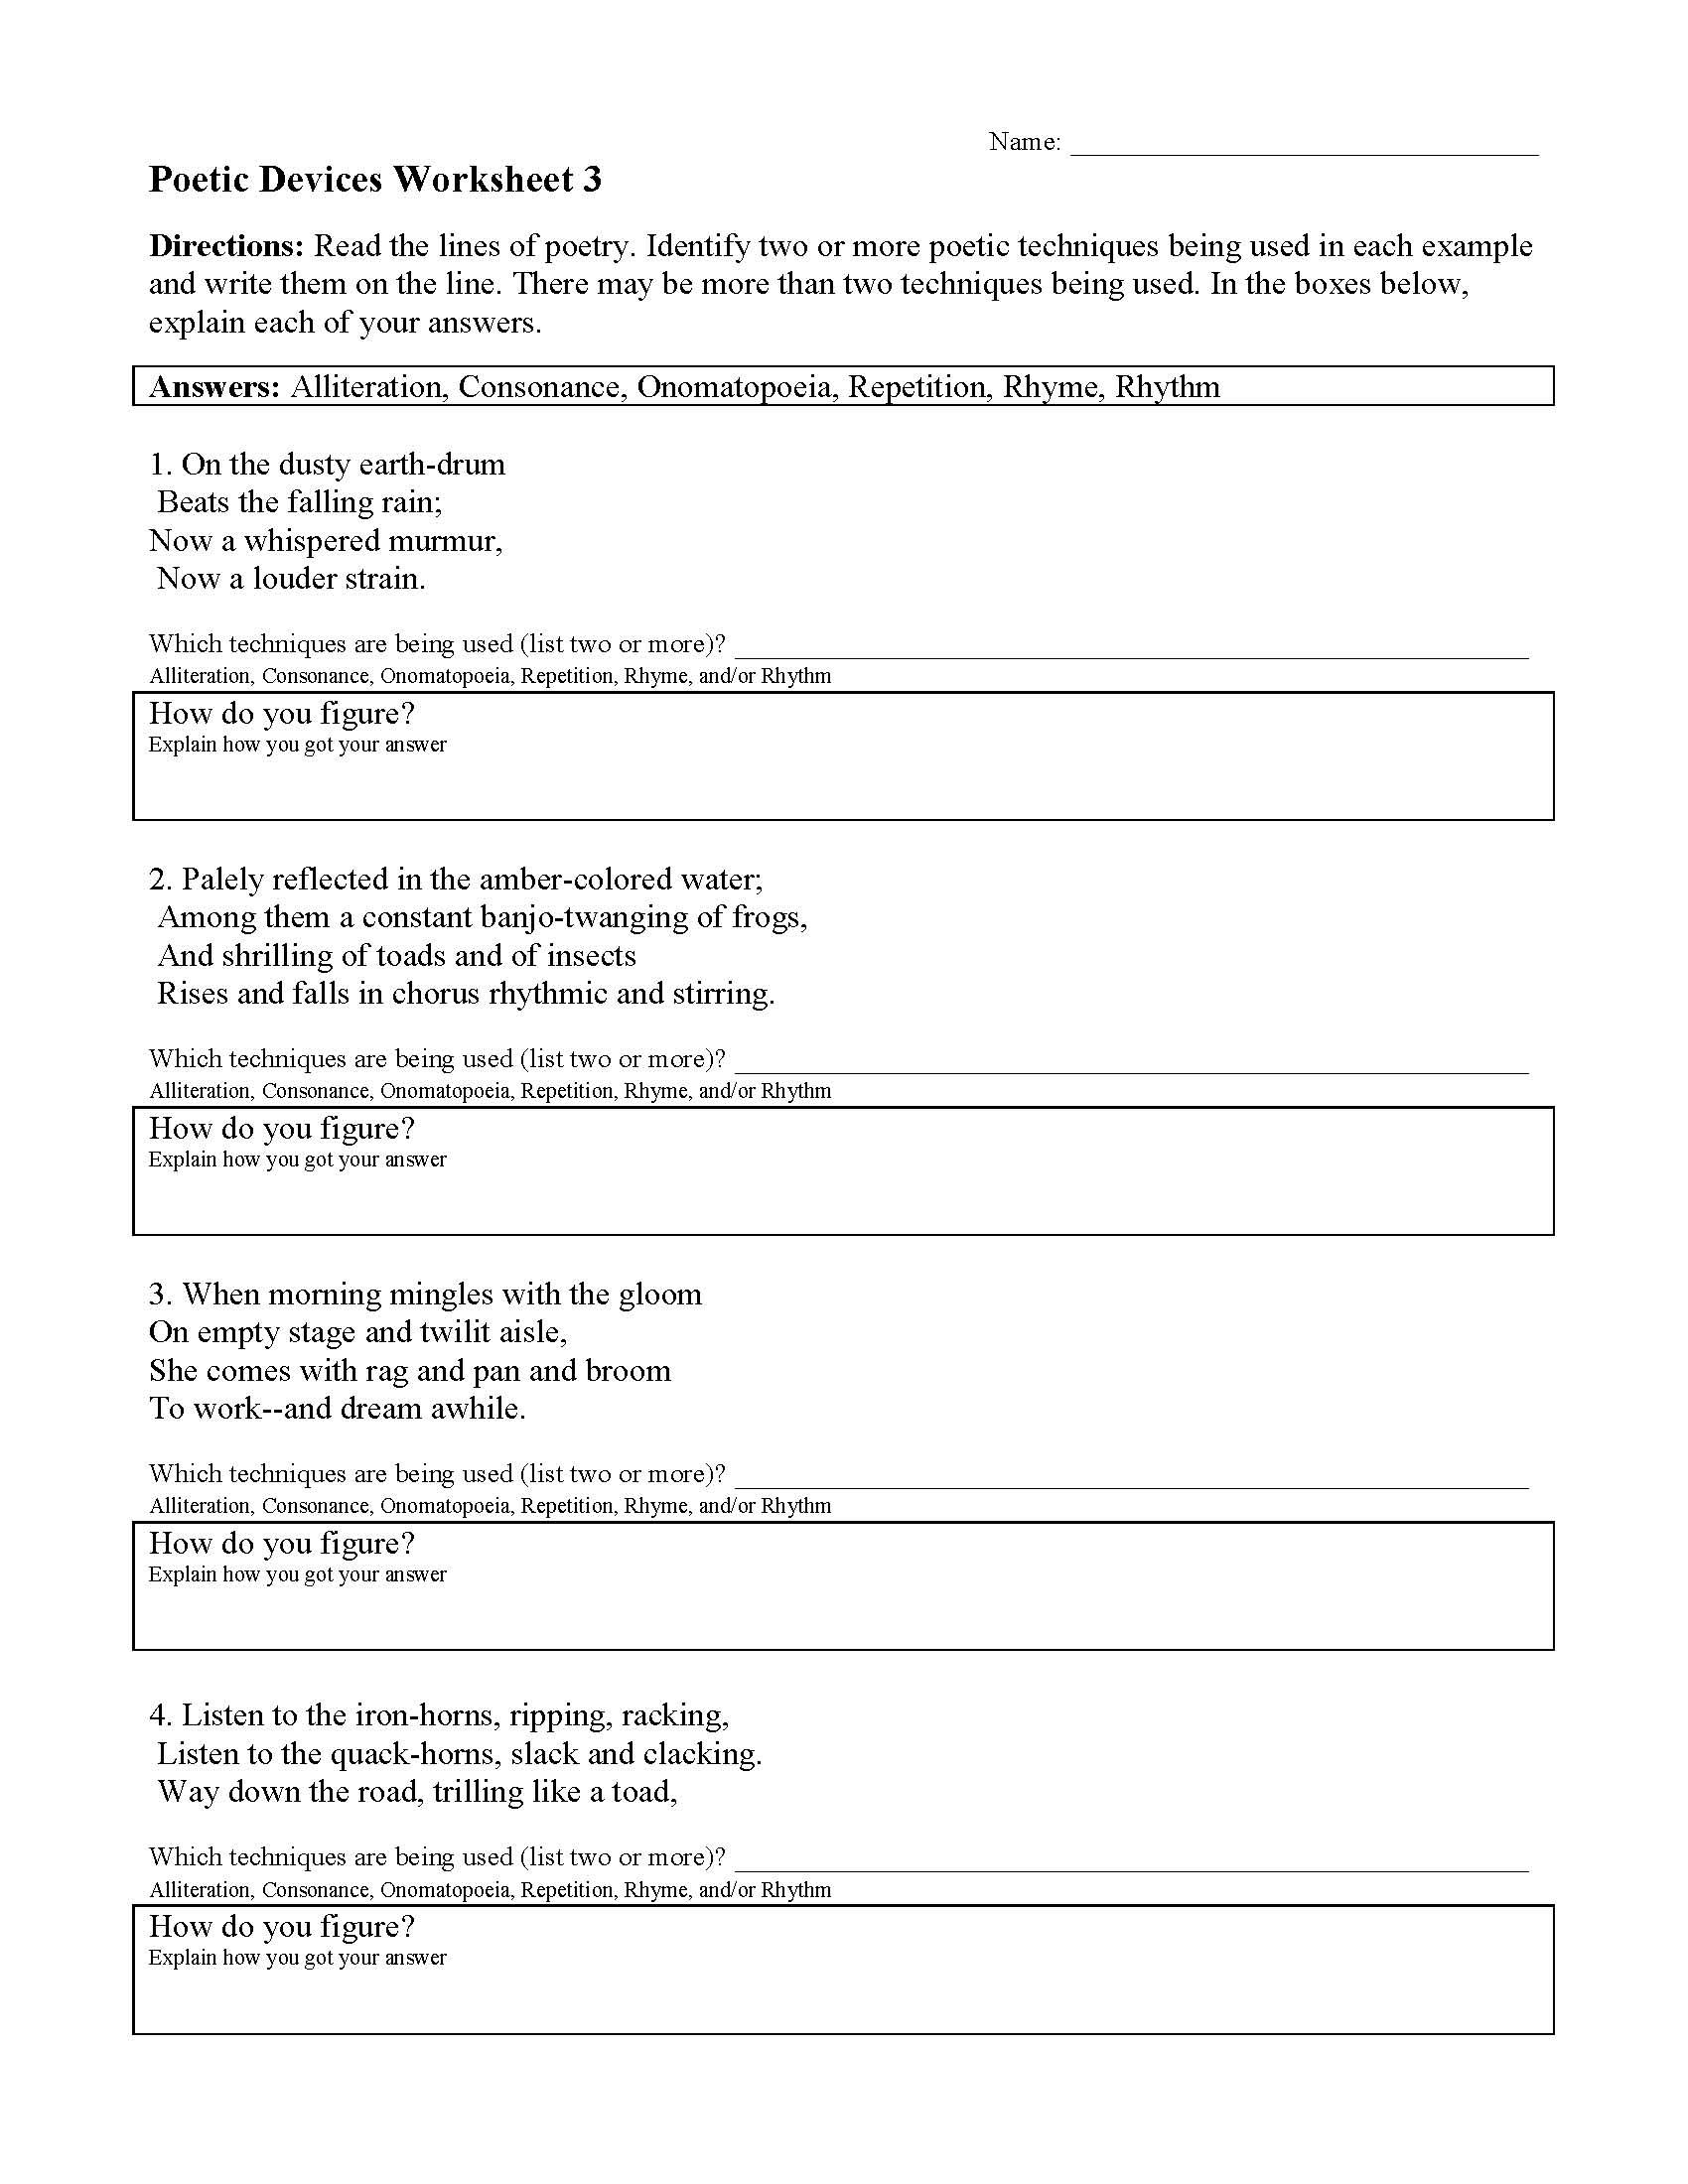 This Is A Preview Image Of The Poetic Devices Worksheet 3